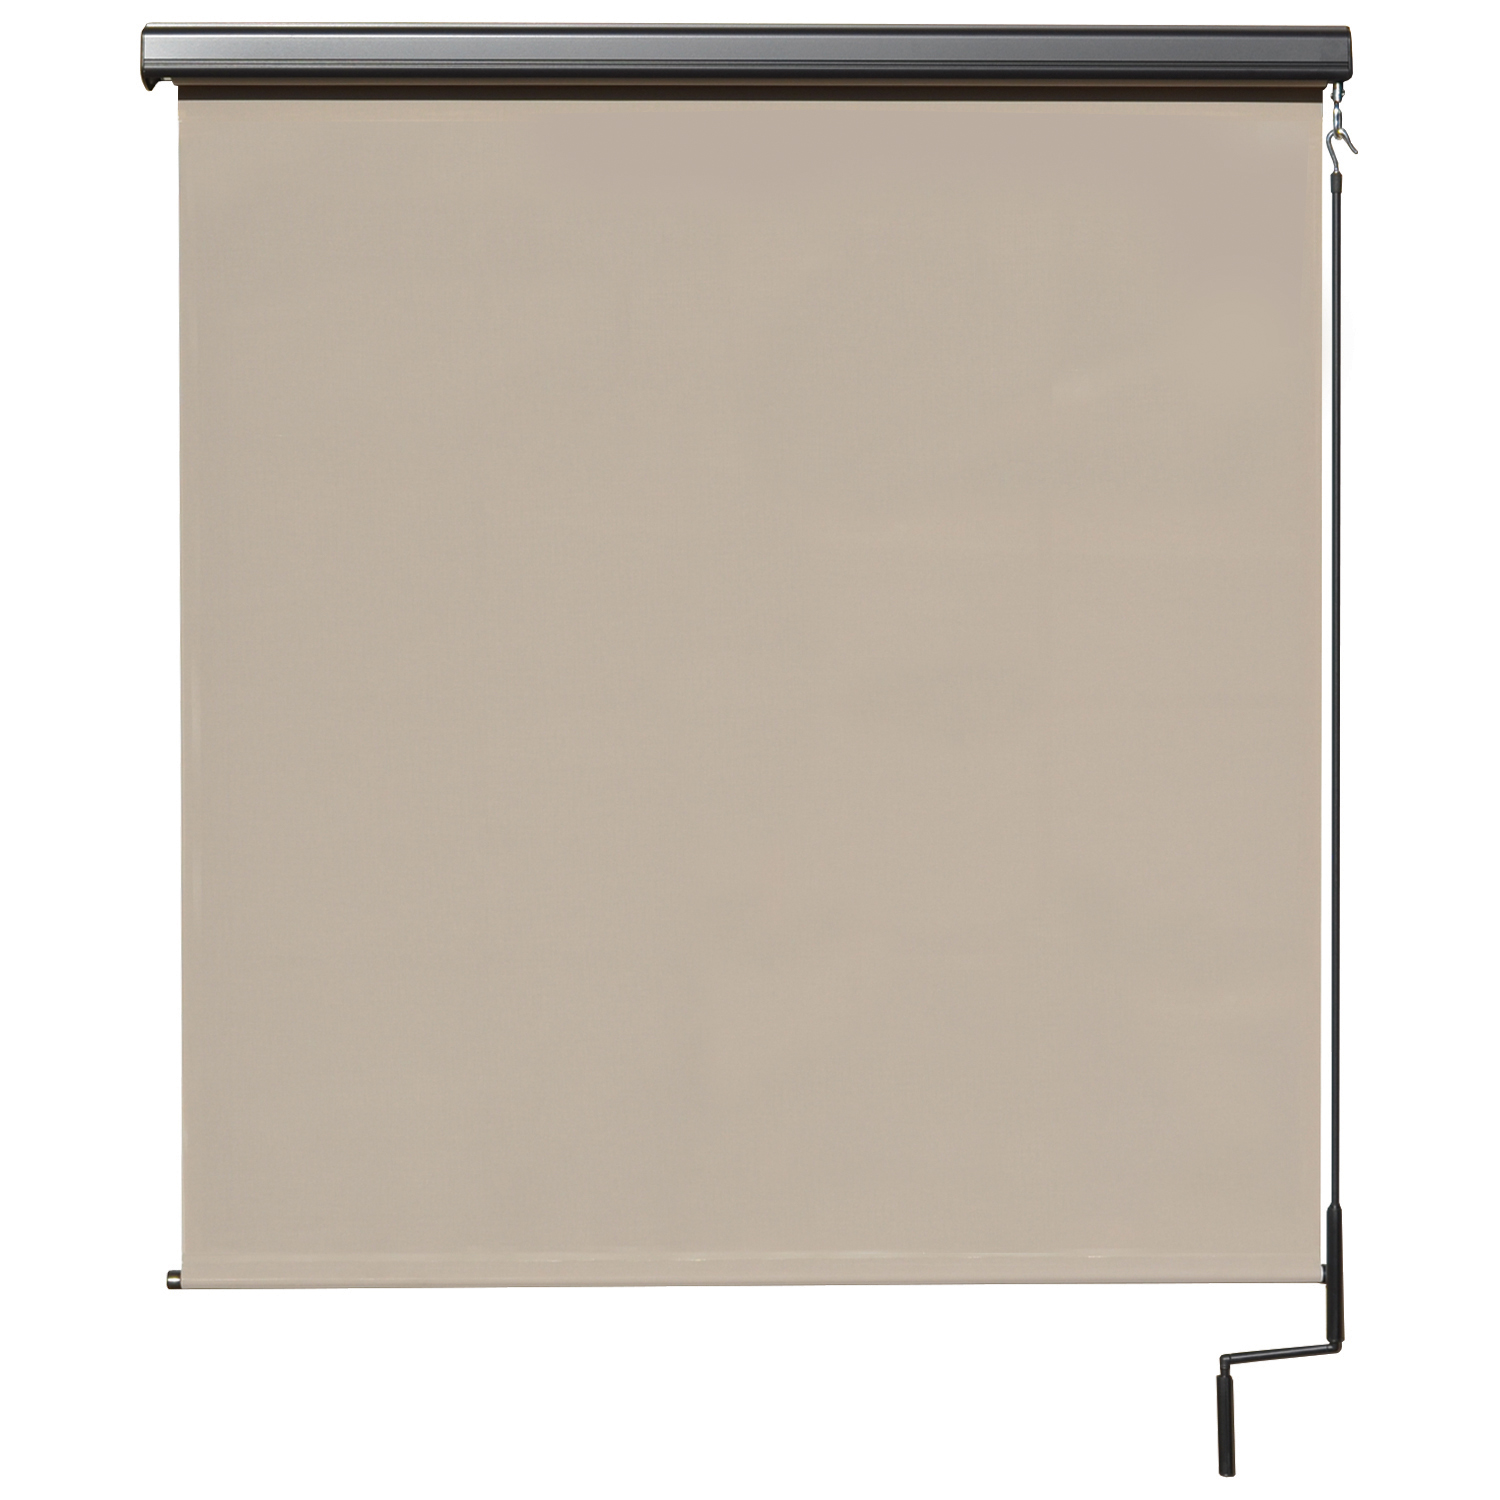 Premier Cordless Outdoor Sun Shade with Protective Valance, 7' W x 8' L, Maple